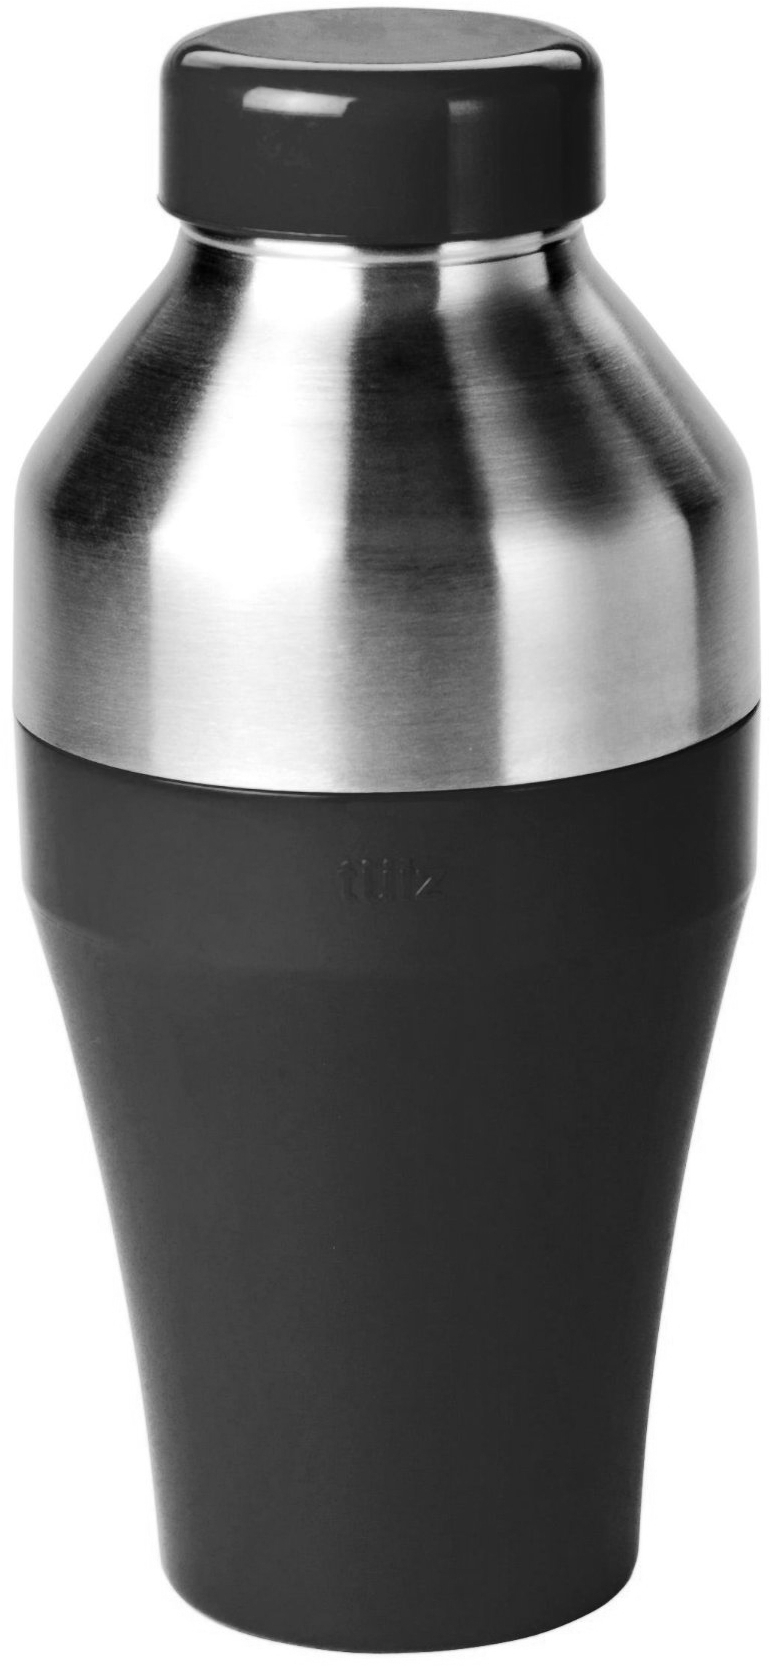 Tulz Black Stainless Steel Cocktail Shaker